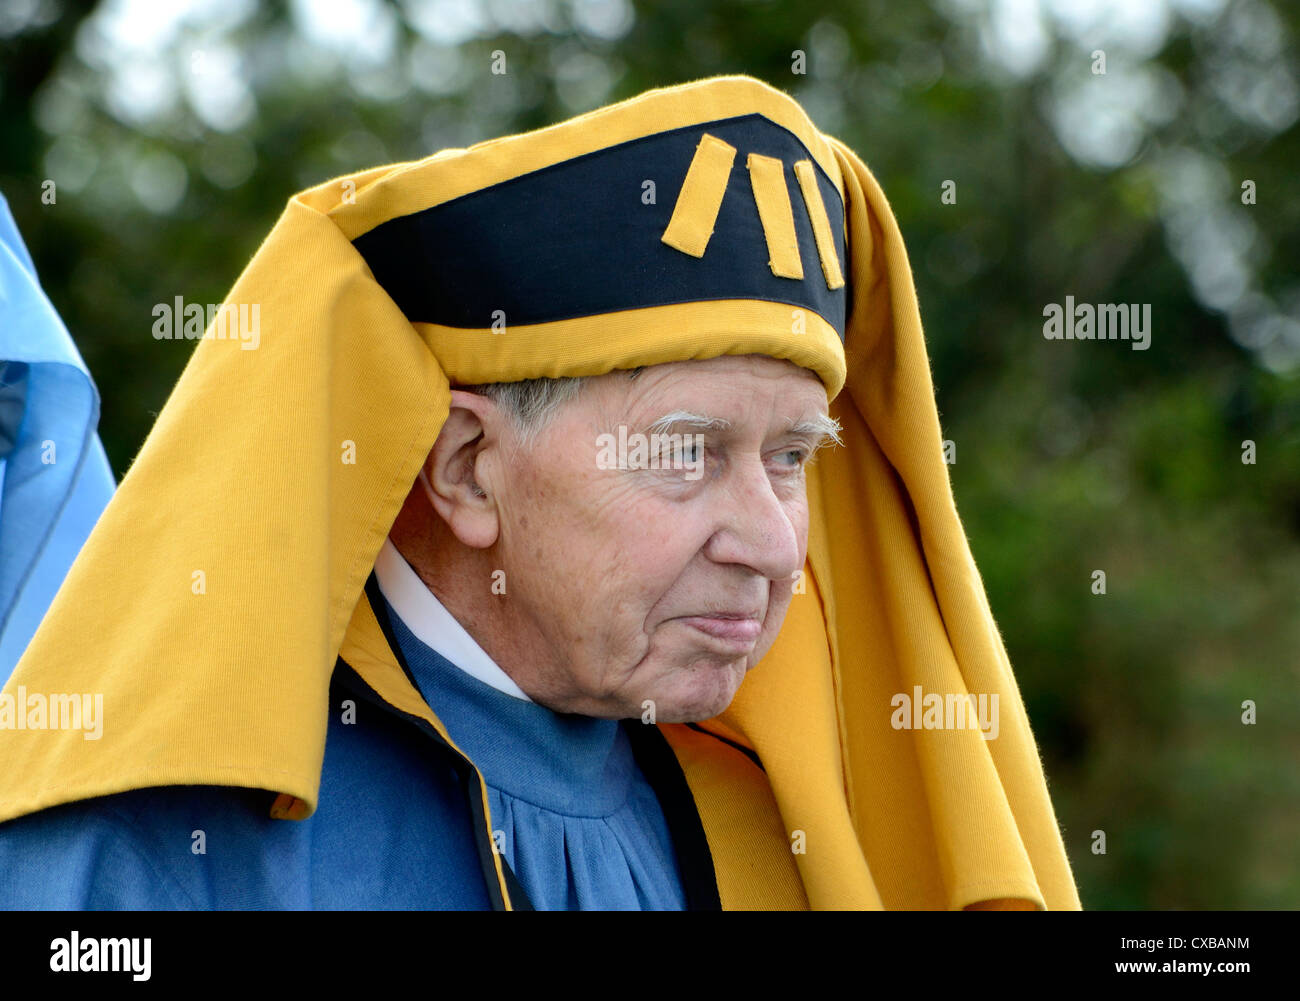 A ' cornish bard ' at the annual gorsedh ceremony in camelford cornwall, uk - Stock Image